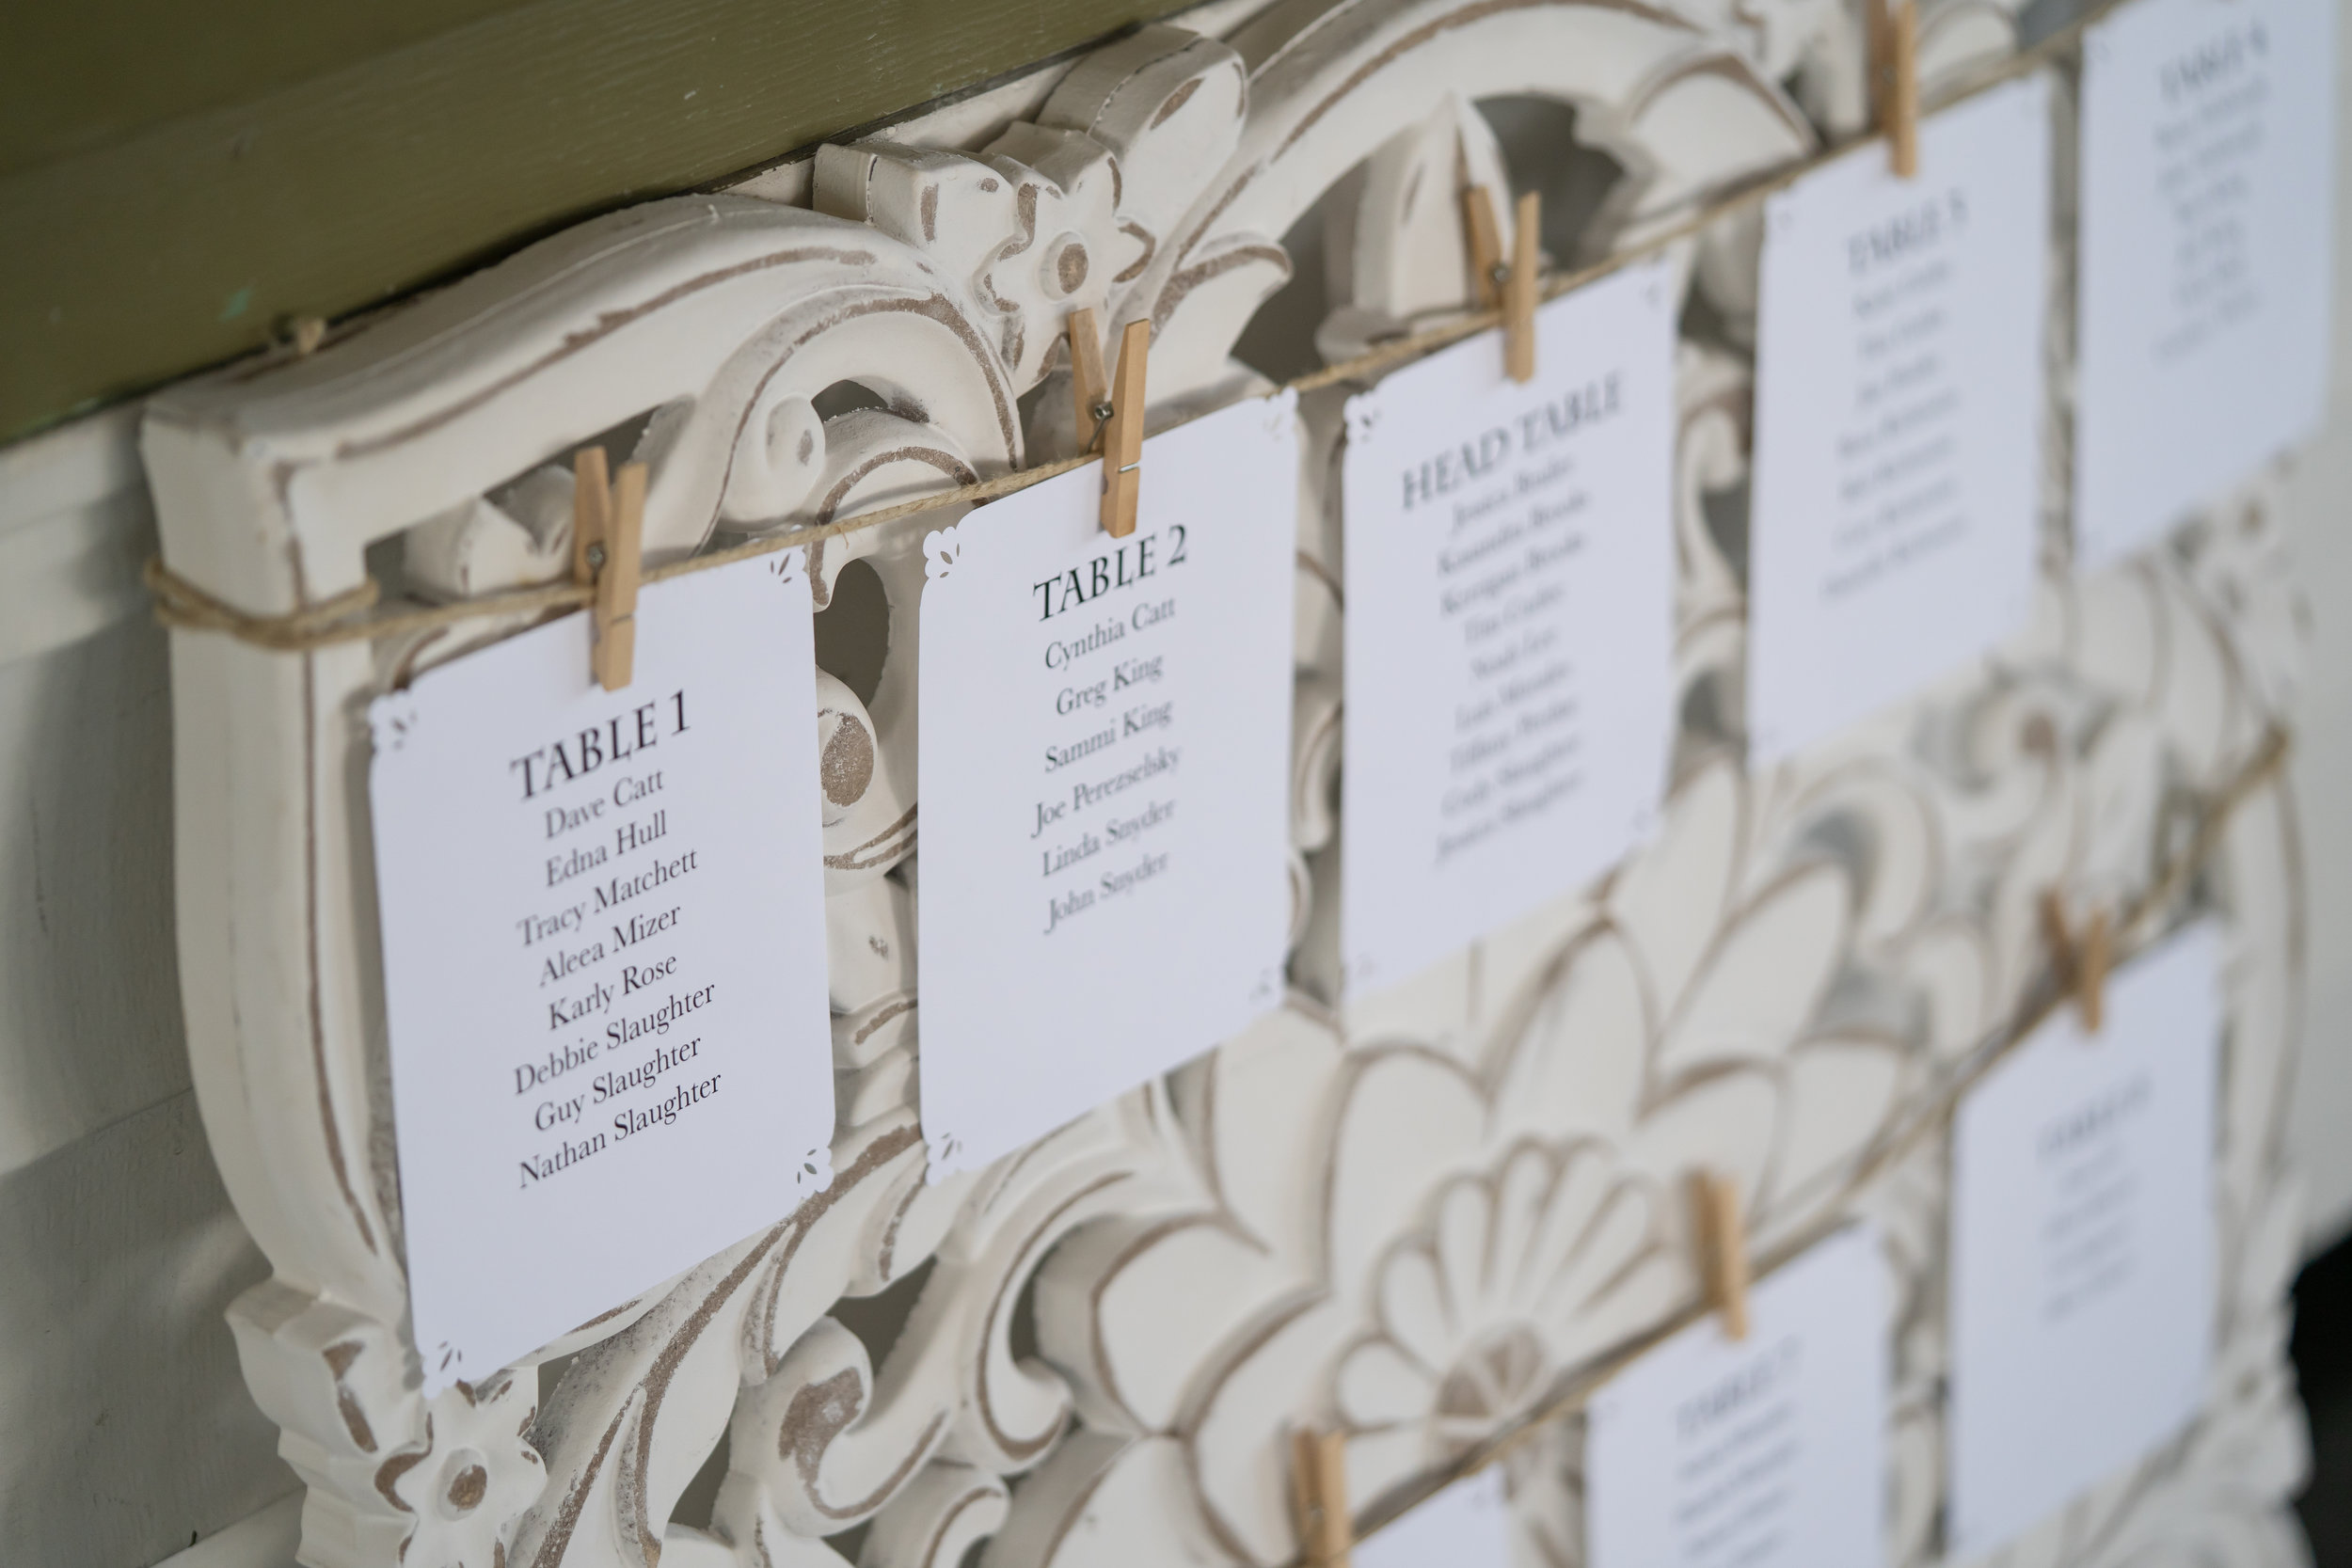 Delicate laser cut seating chart cards were hung by miniature clothes pins against a carved wood backdrop.